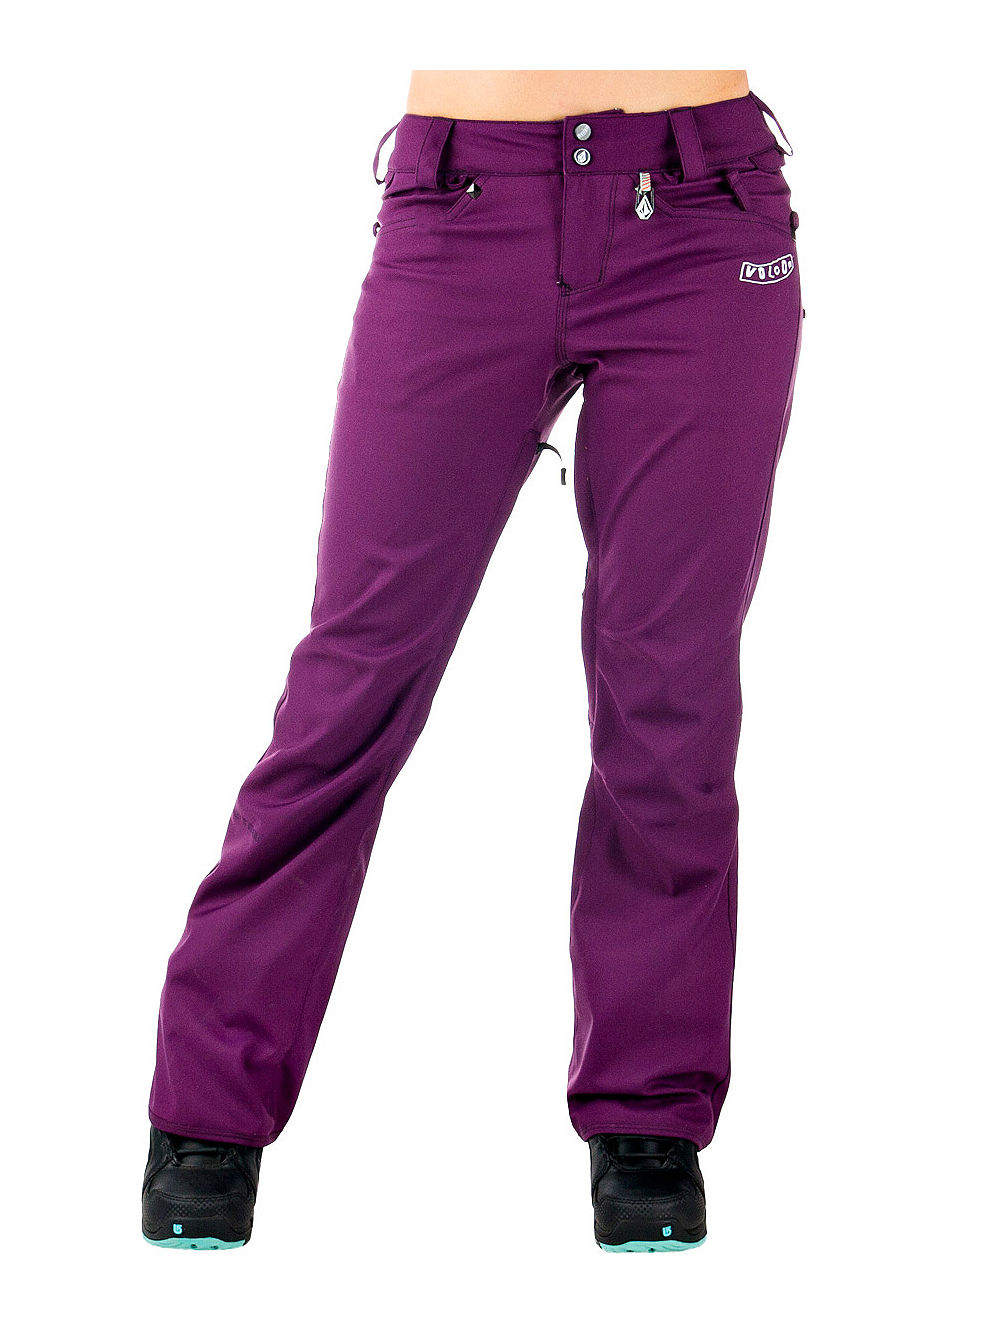 District Stretch Pant Women